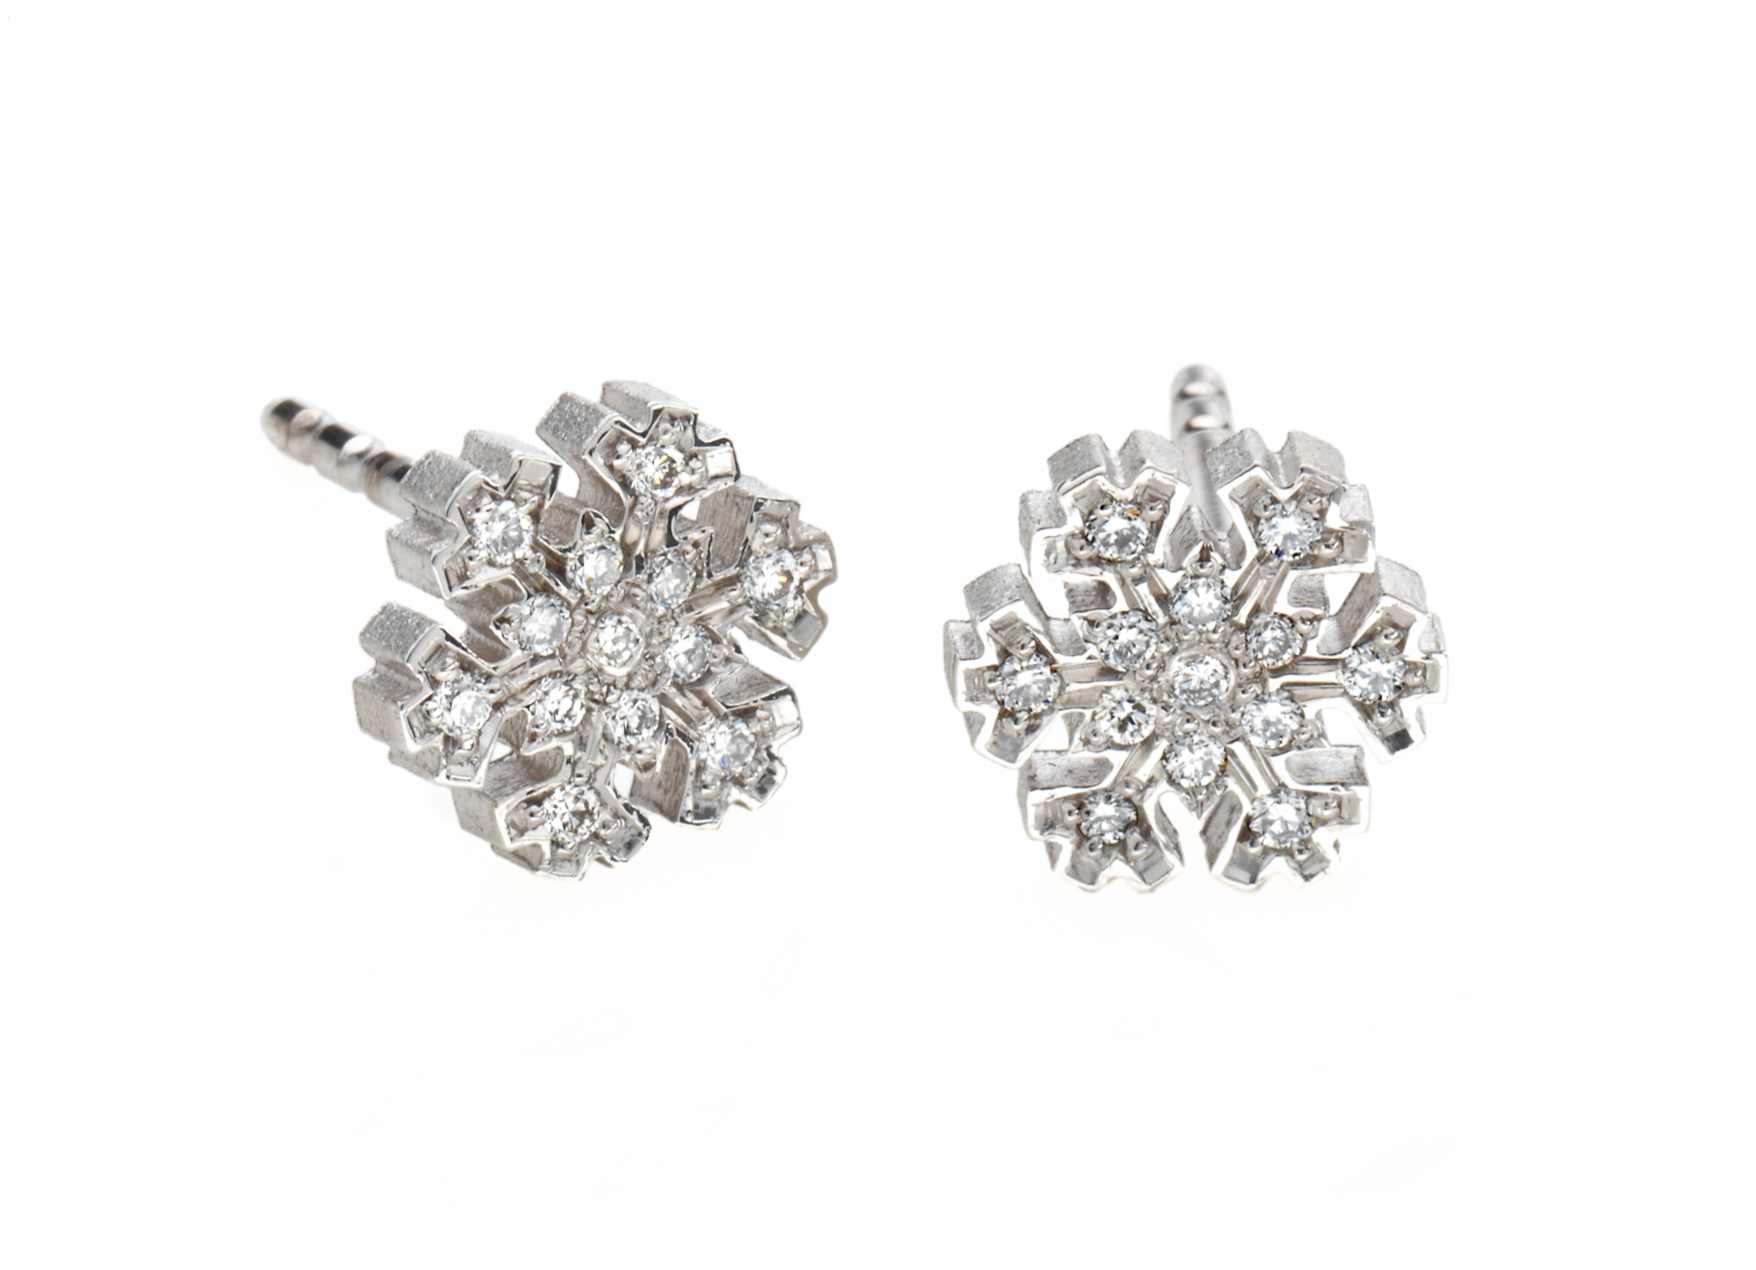 Boutons d\'oreilles flocon de neige blanc brillant or blanc et diamants